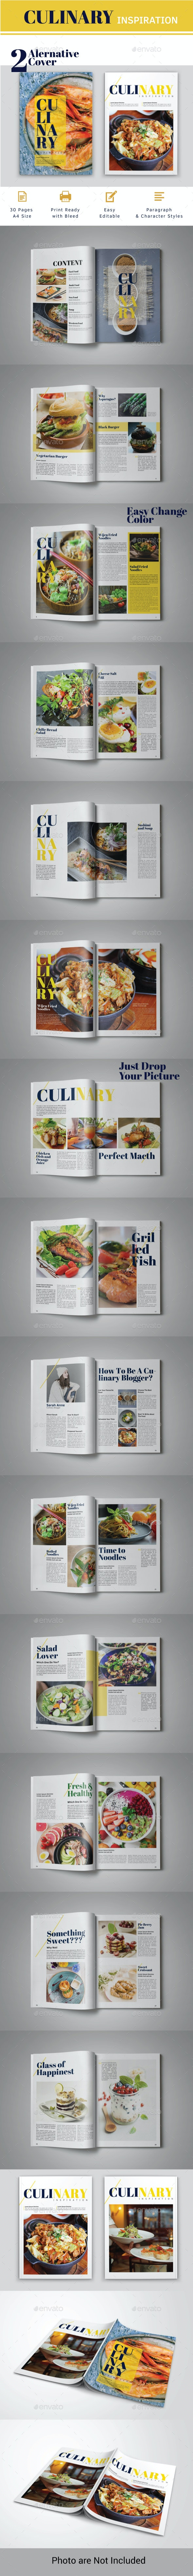 Culinary Inspiration Indesign Template - Magazines Print Templates